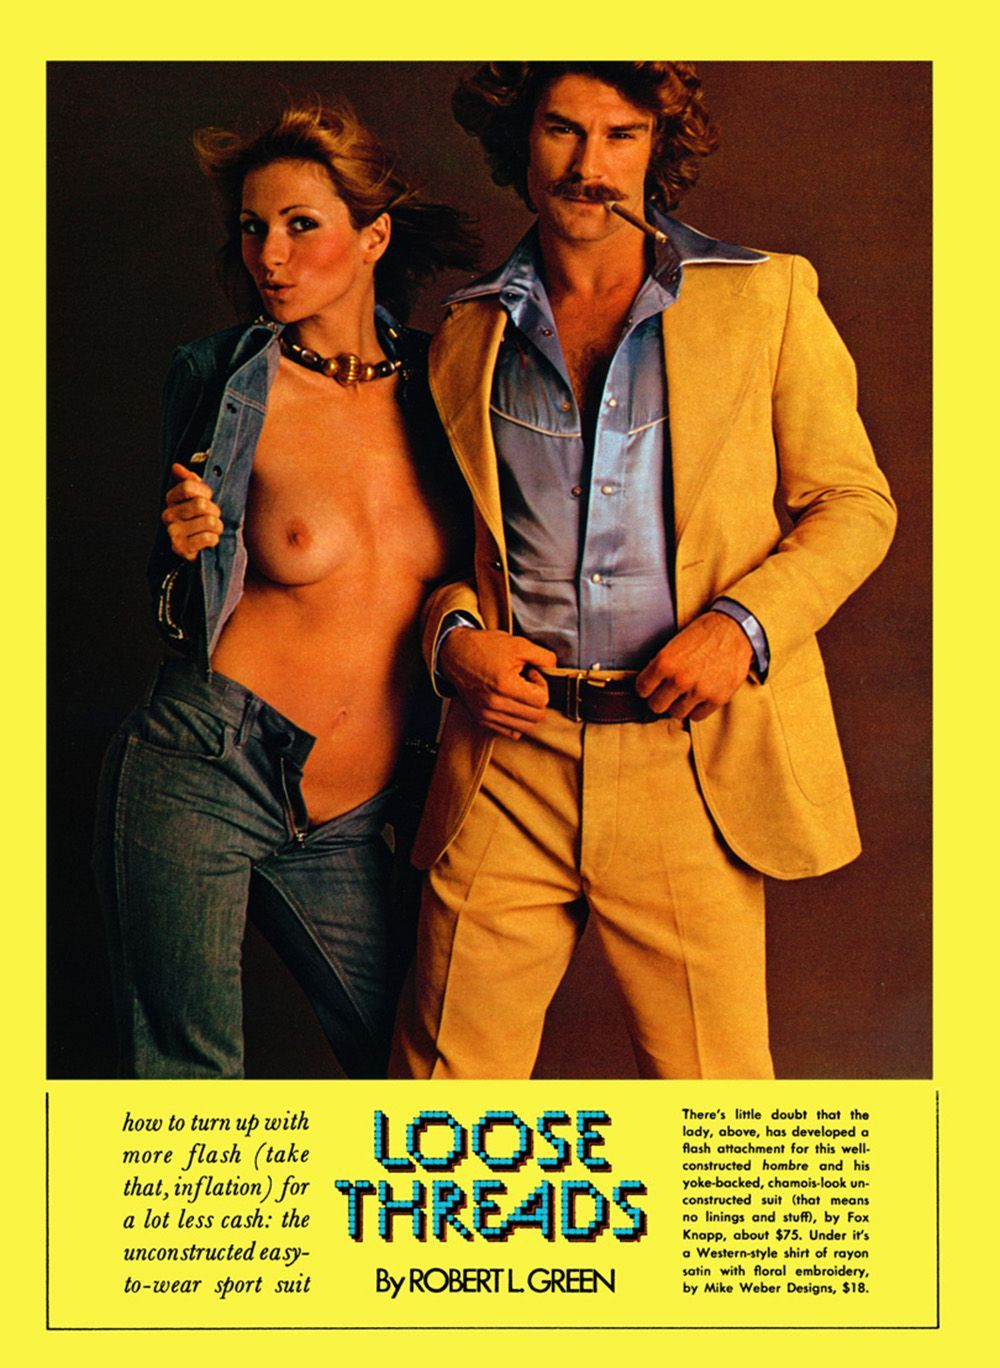 fashion studs: 1970s macho male models & their rarely-clothed